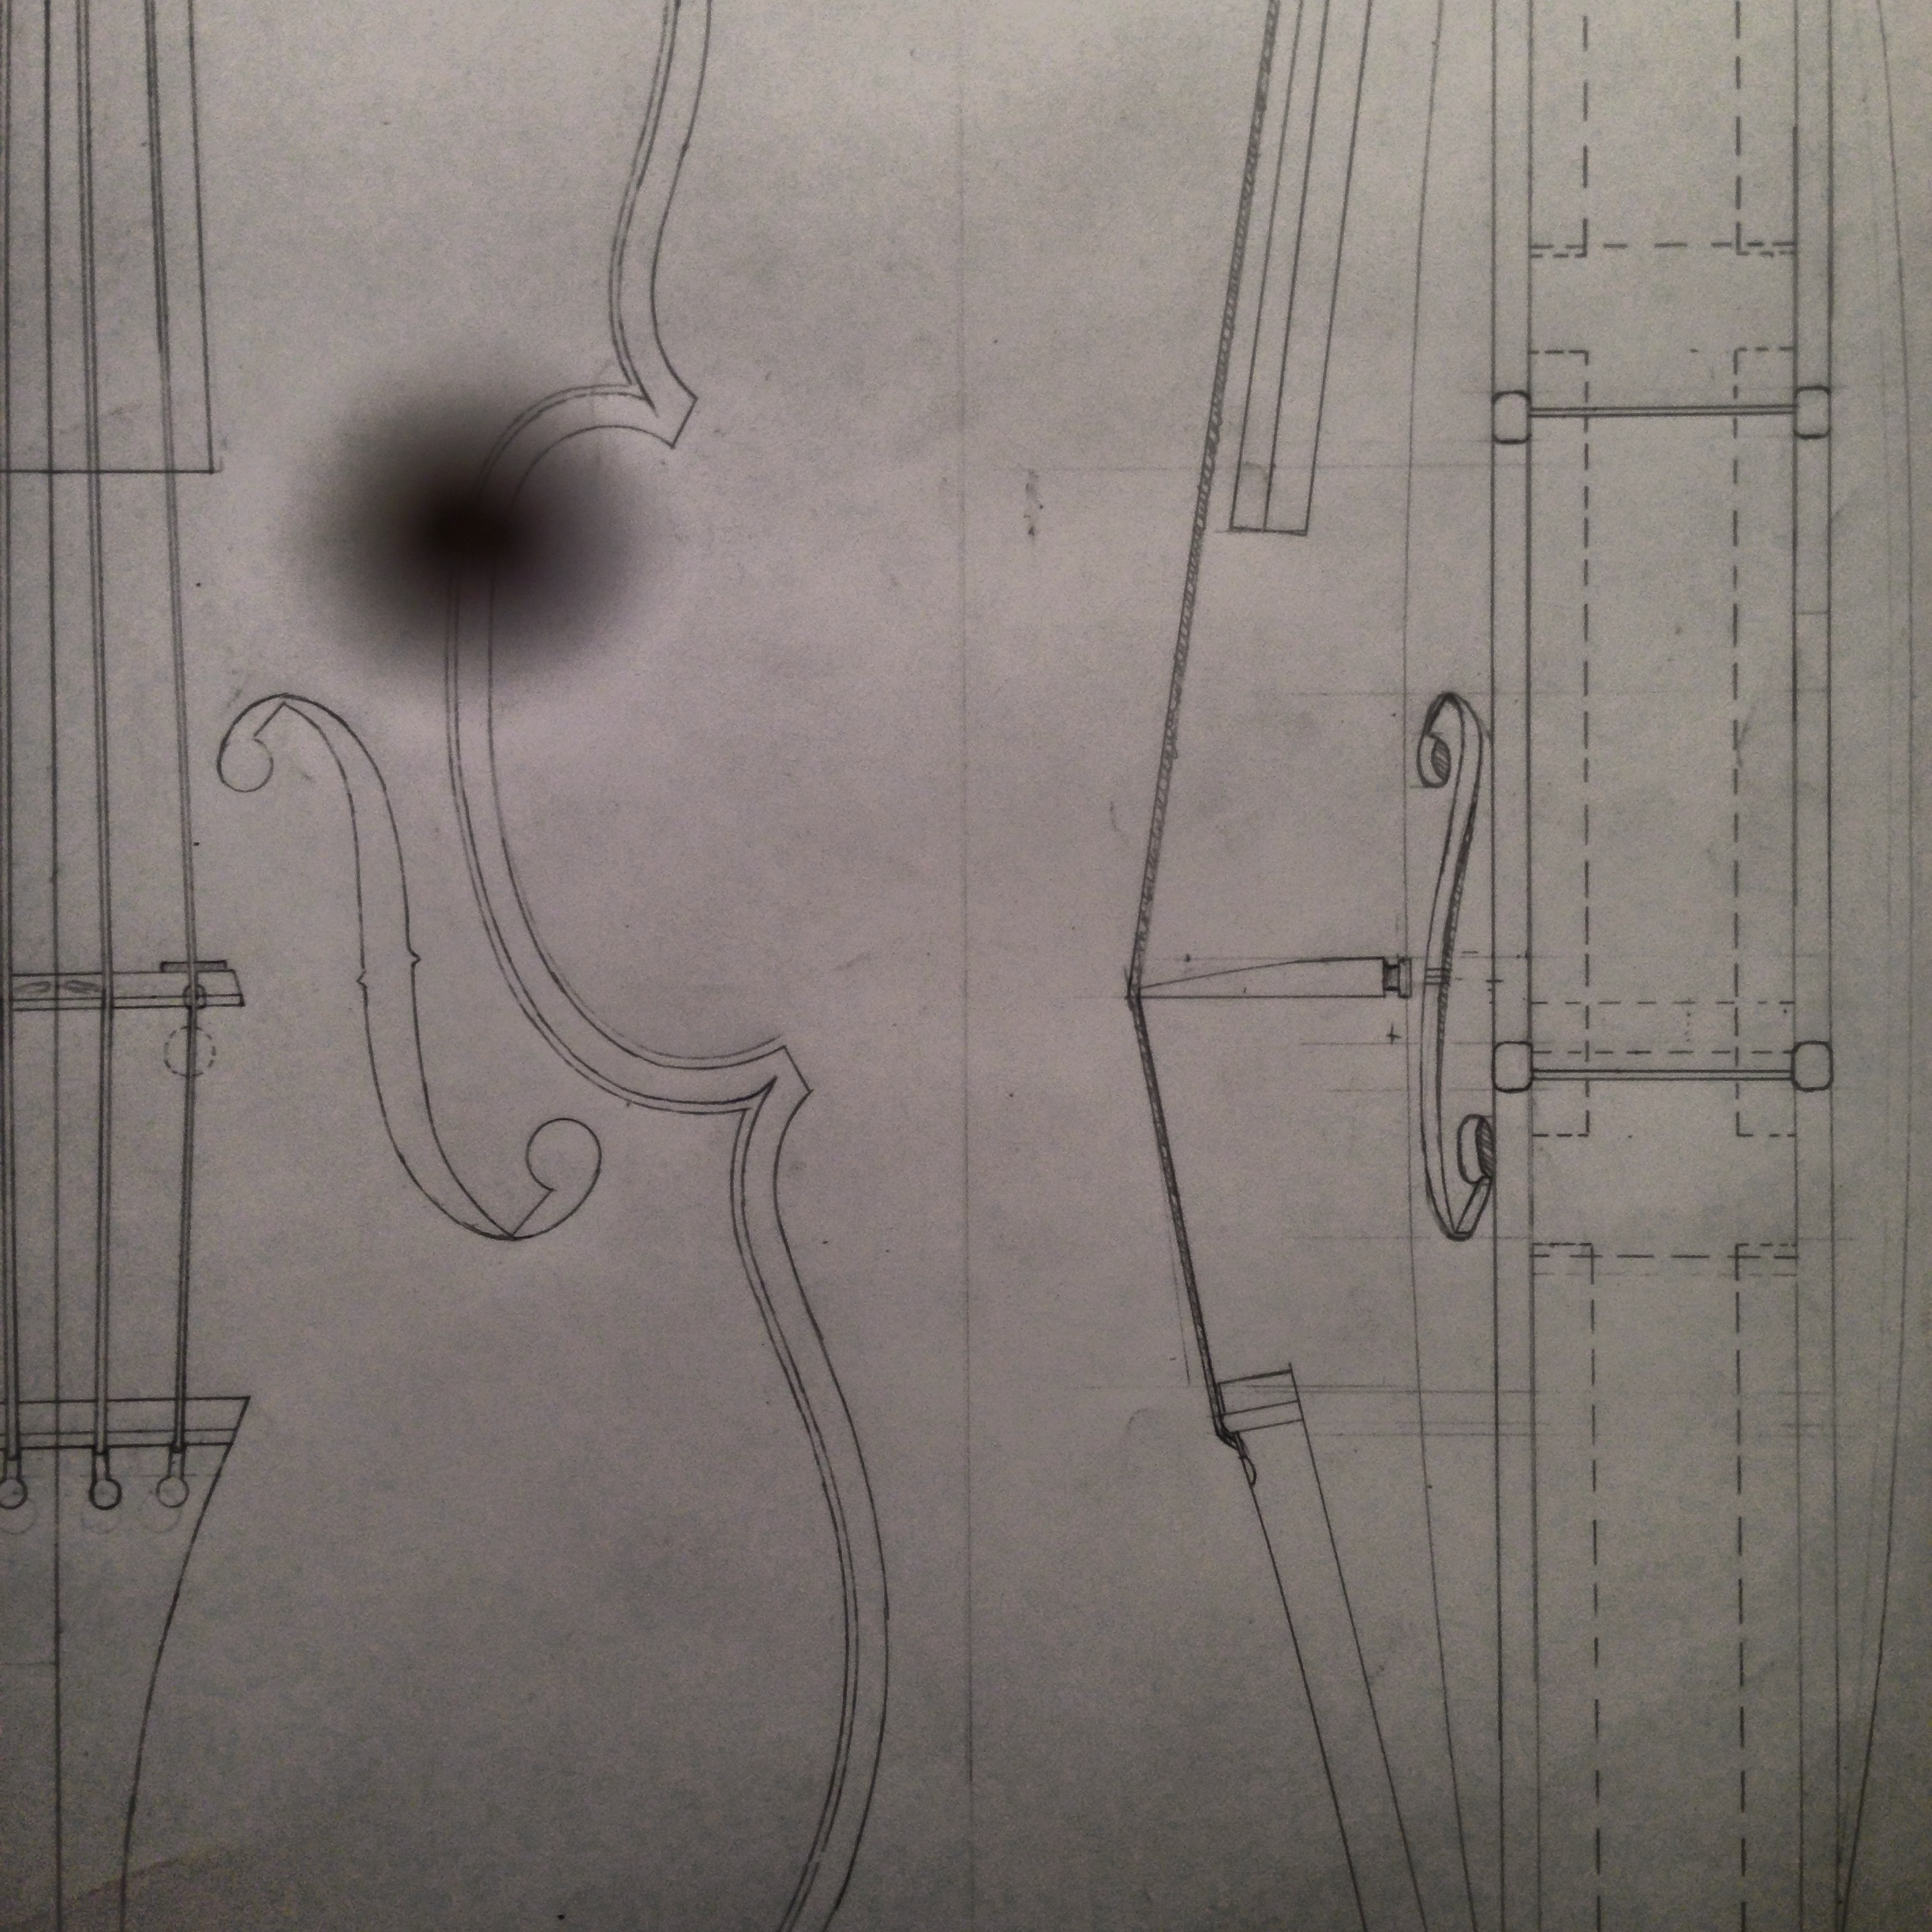 Drafting a Stradivari violin